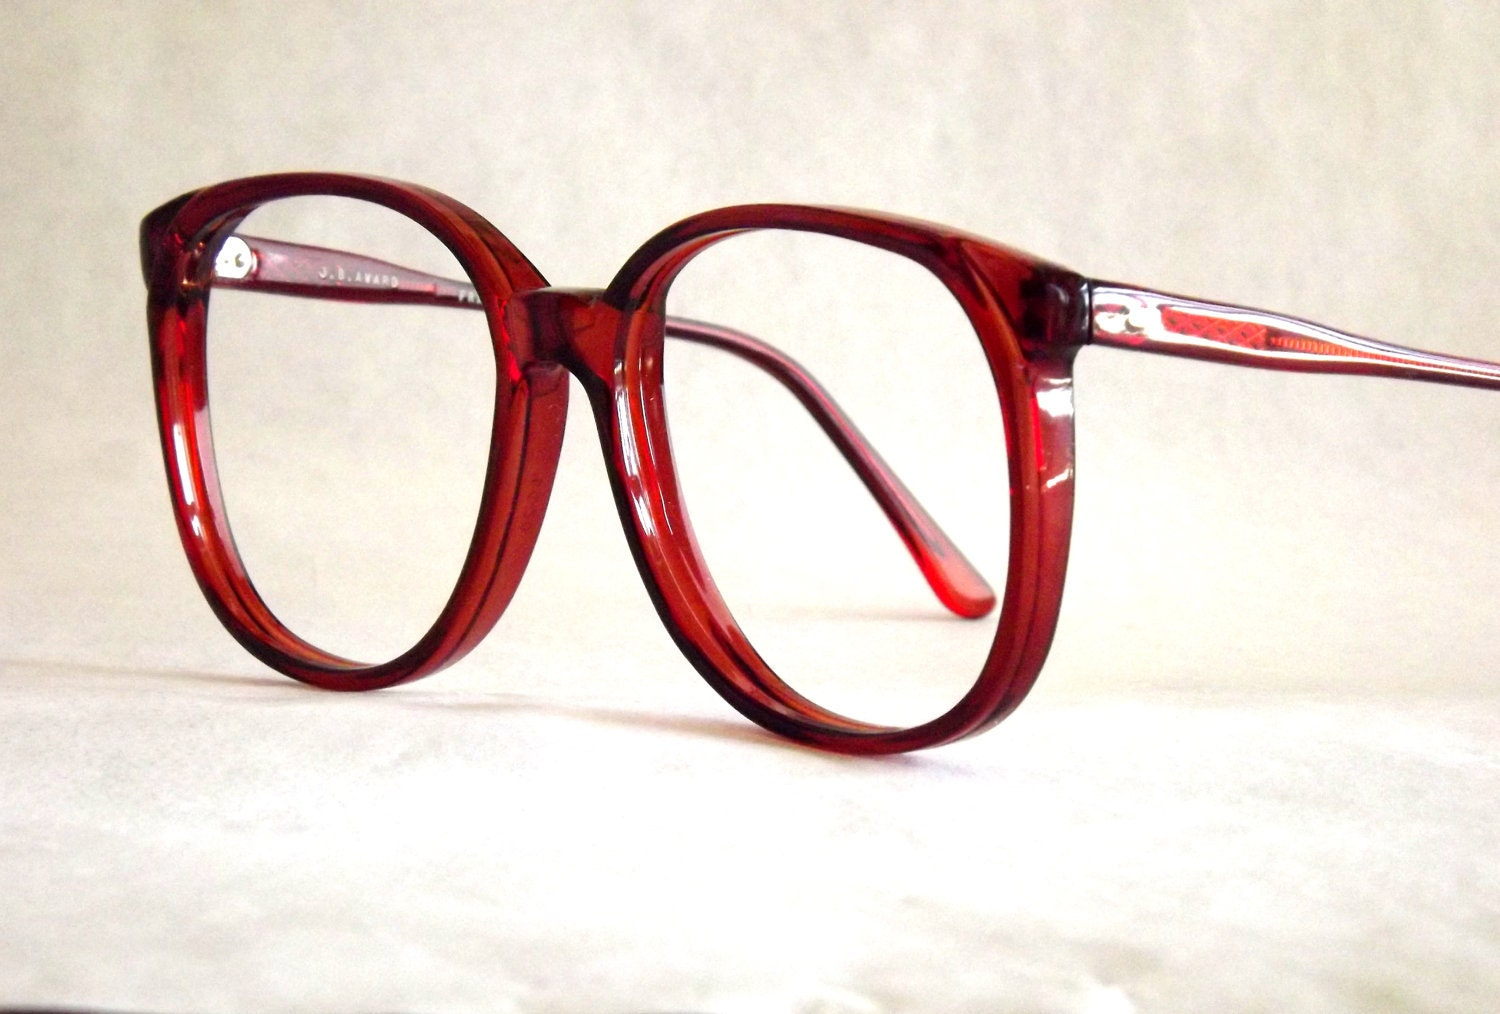 Eyeglass Frames On Your Picture : Huge Preppy Red Eyeglasses Frames Vintage Eyewear Womens